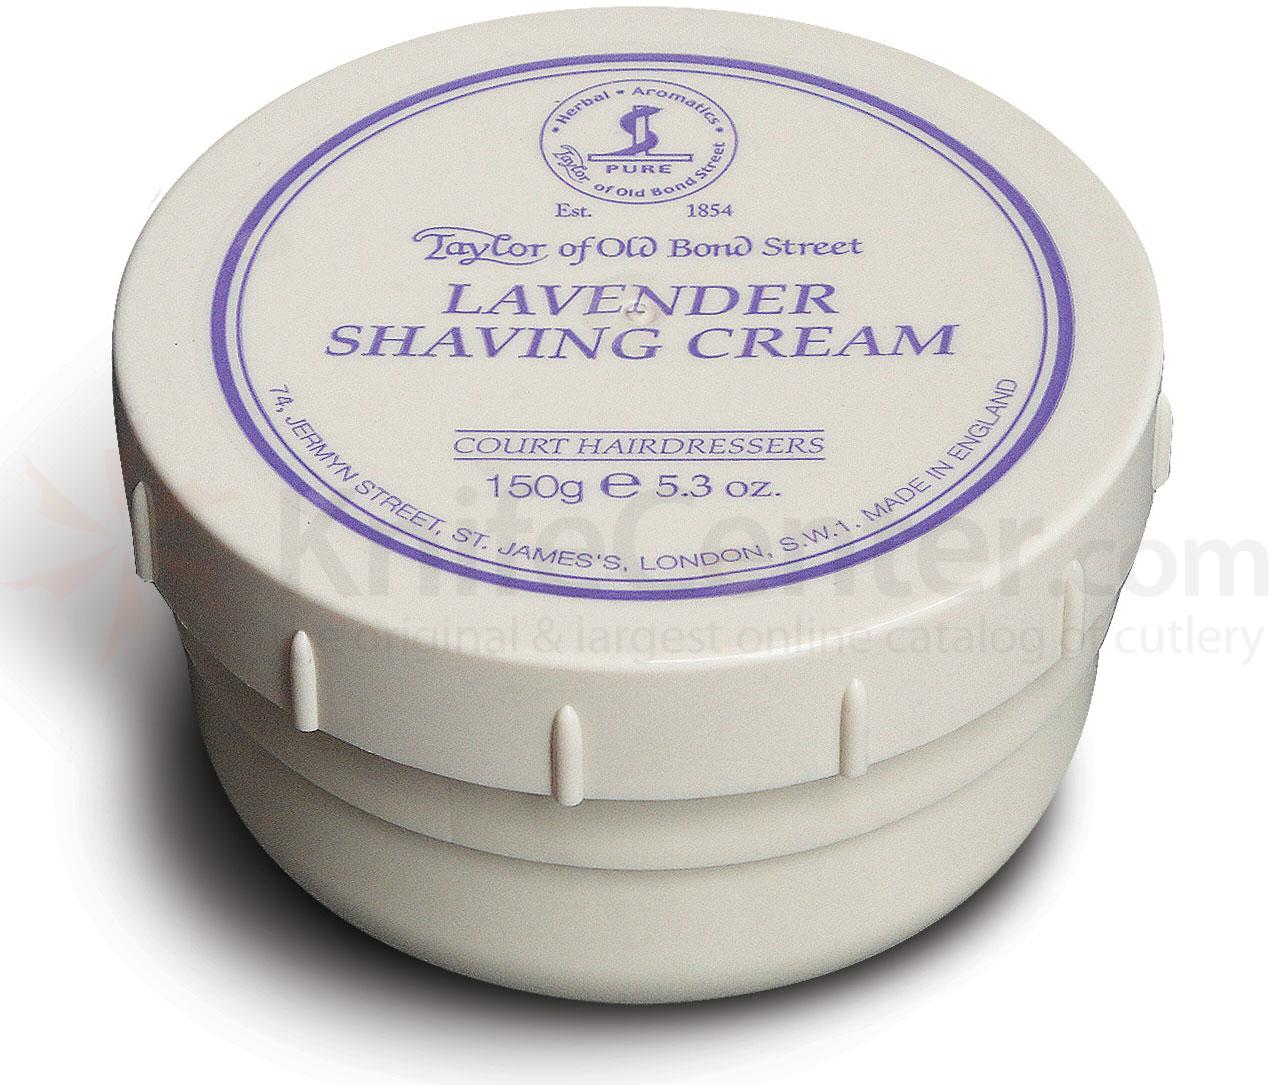 Taylor of Old Bond Street Lavender Shaving Cream 5.3 oz (150g)